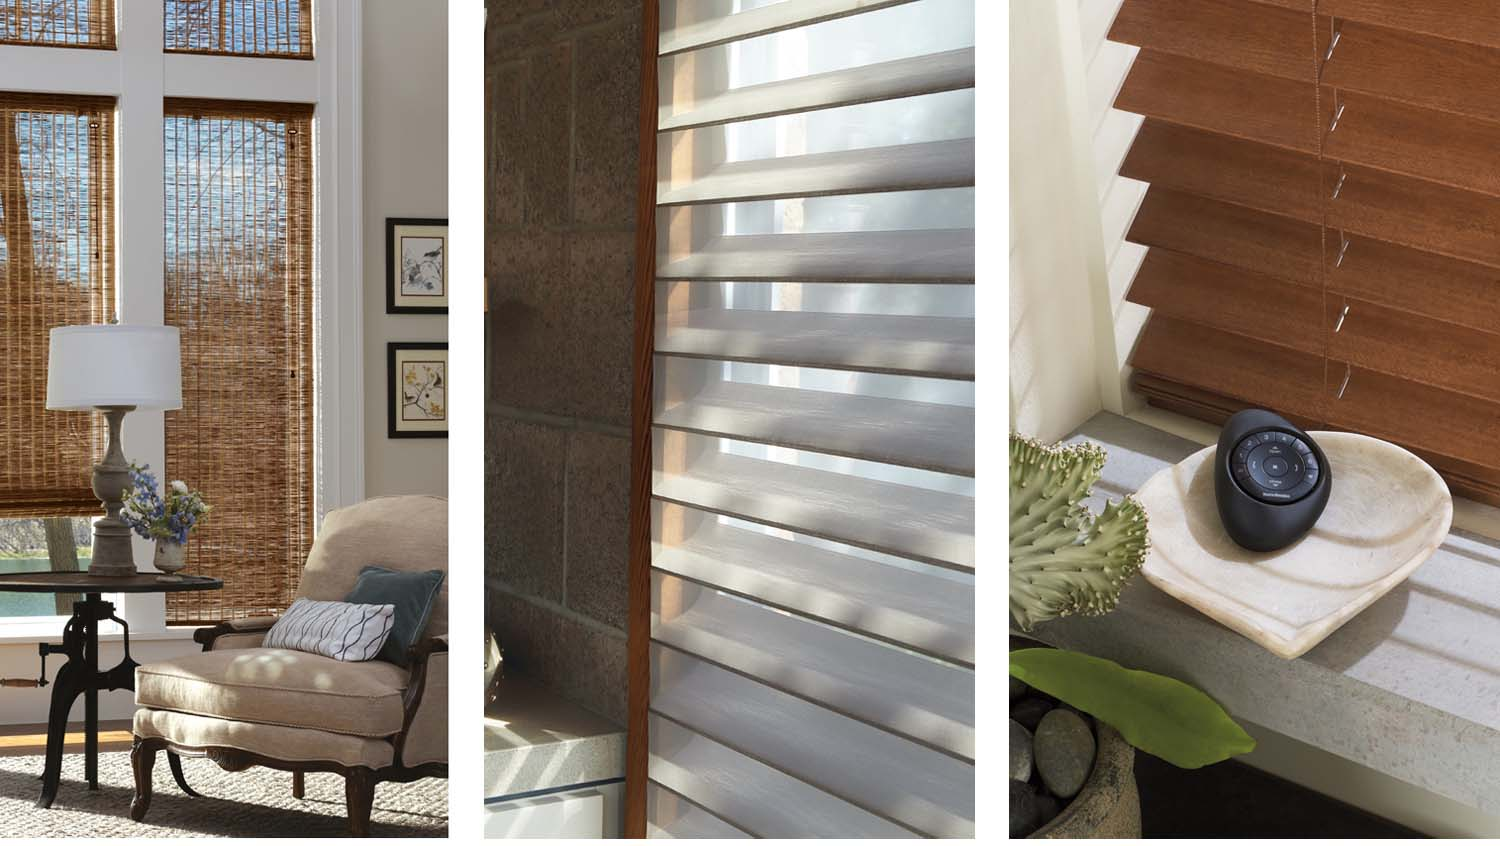 Window Treatments to Match your Privacy Needs - Hancock Park, CA